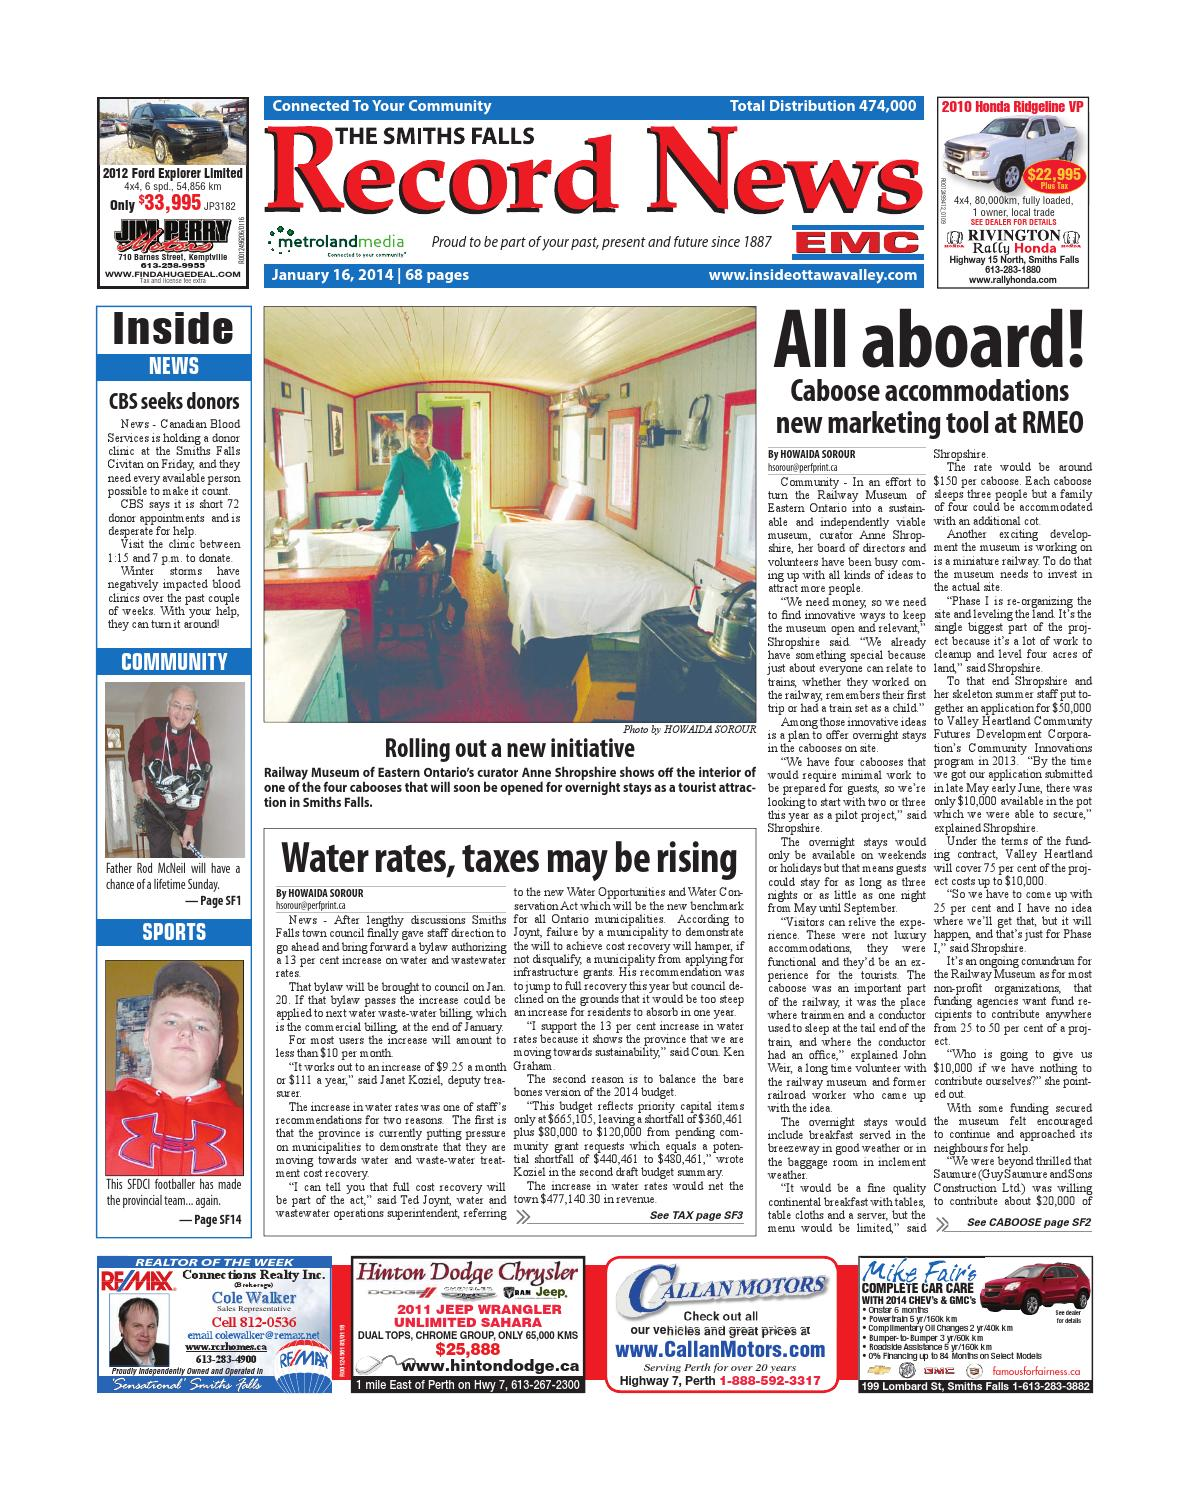 Smithsfalls011614 By Metroland East   Smiths Falls Record News   Issuu